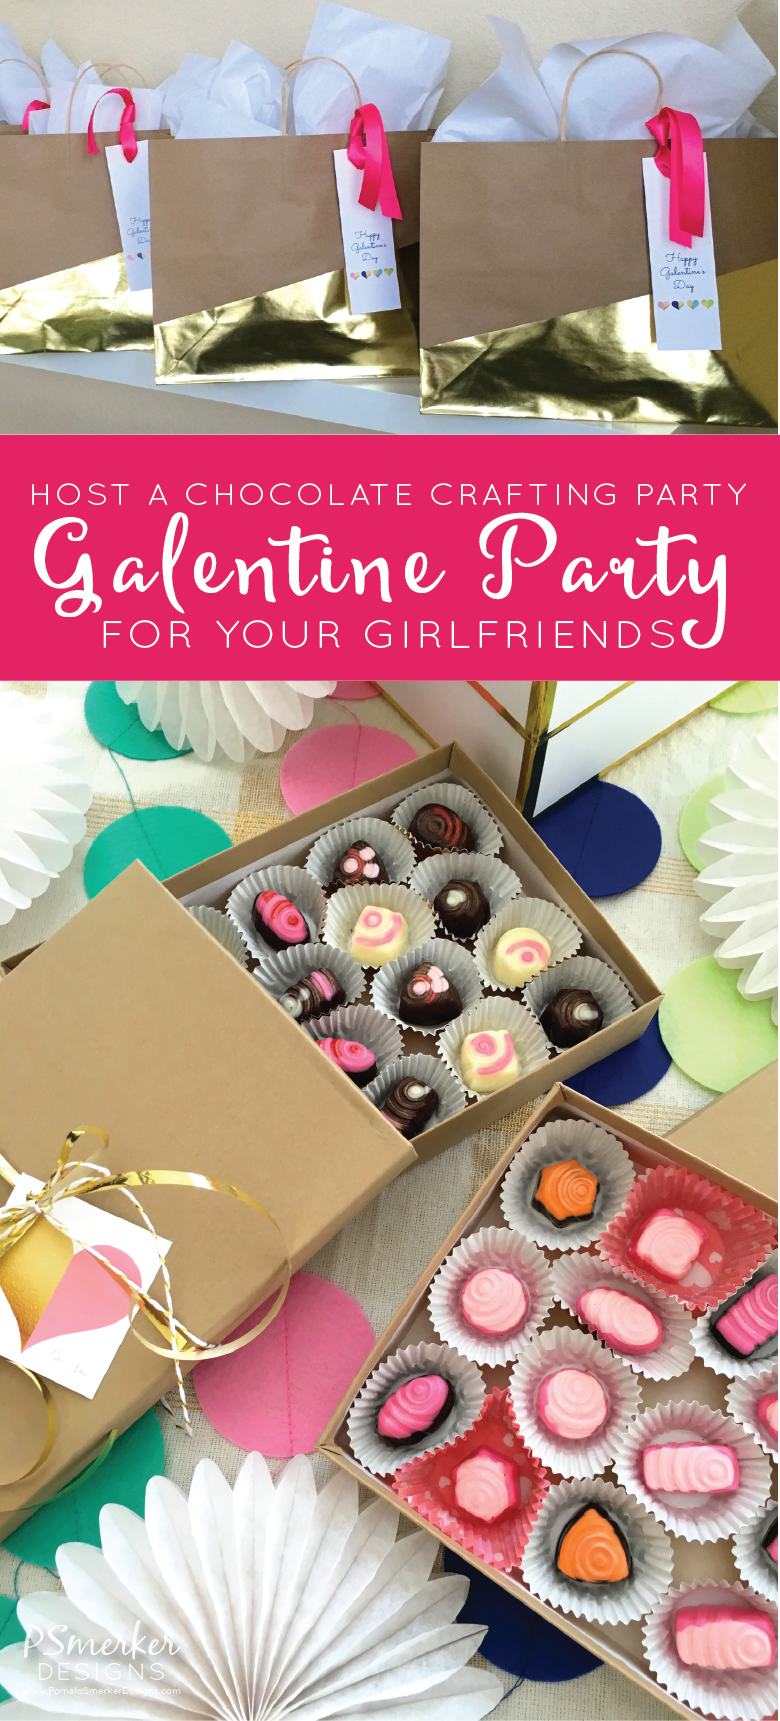 Chocolate Crafting Galentine Party by Pamela Smerker Designs